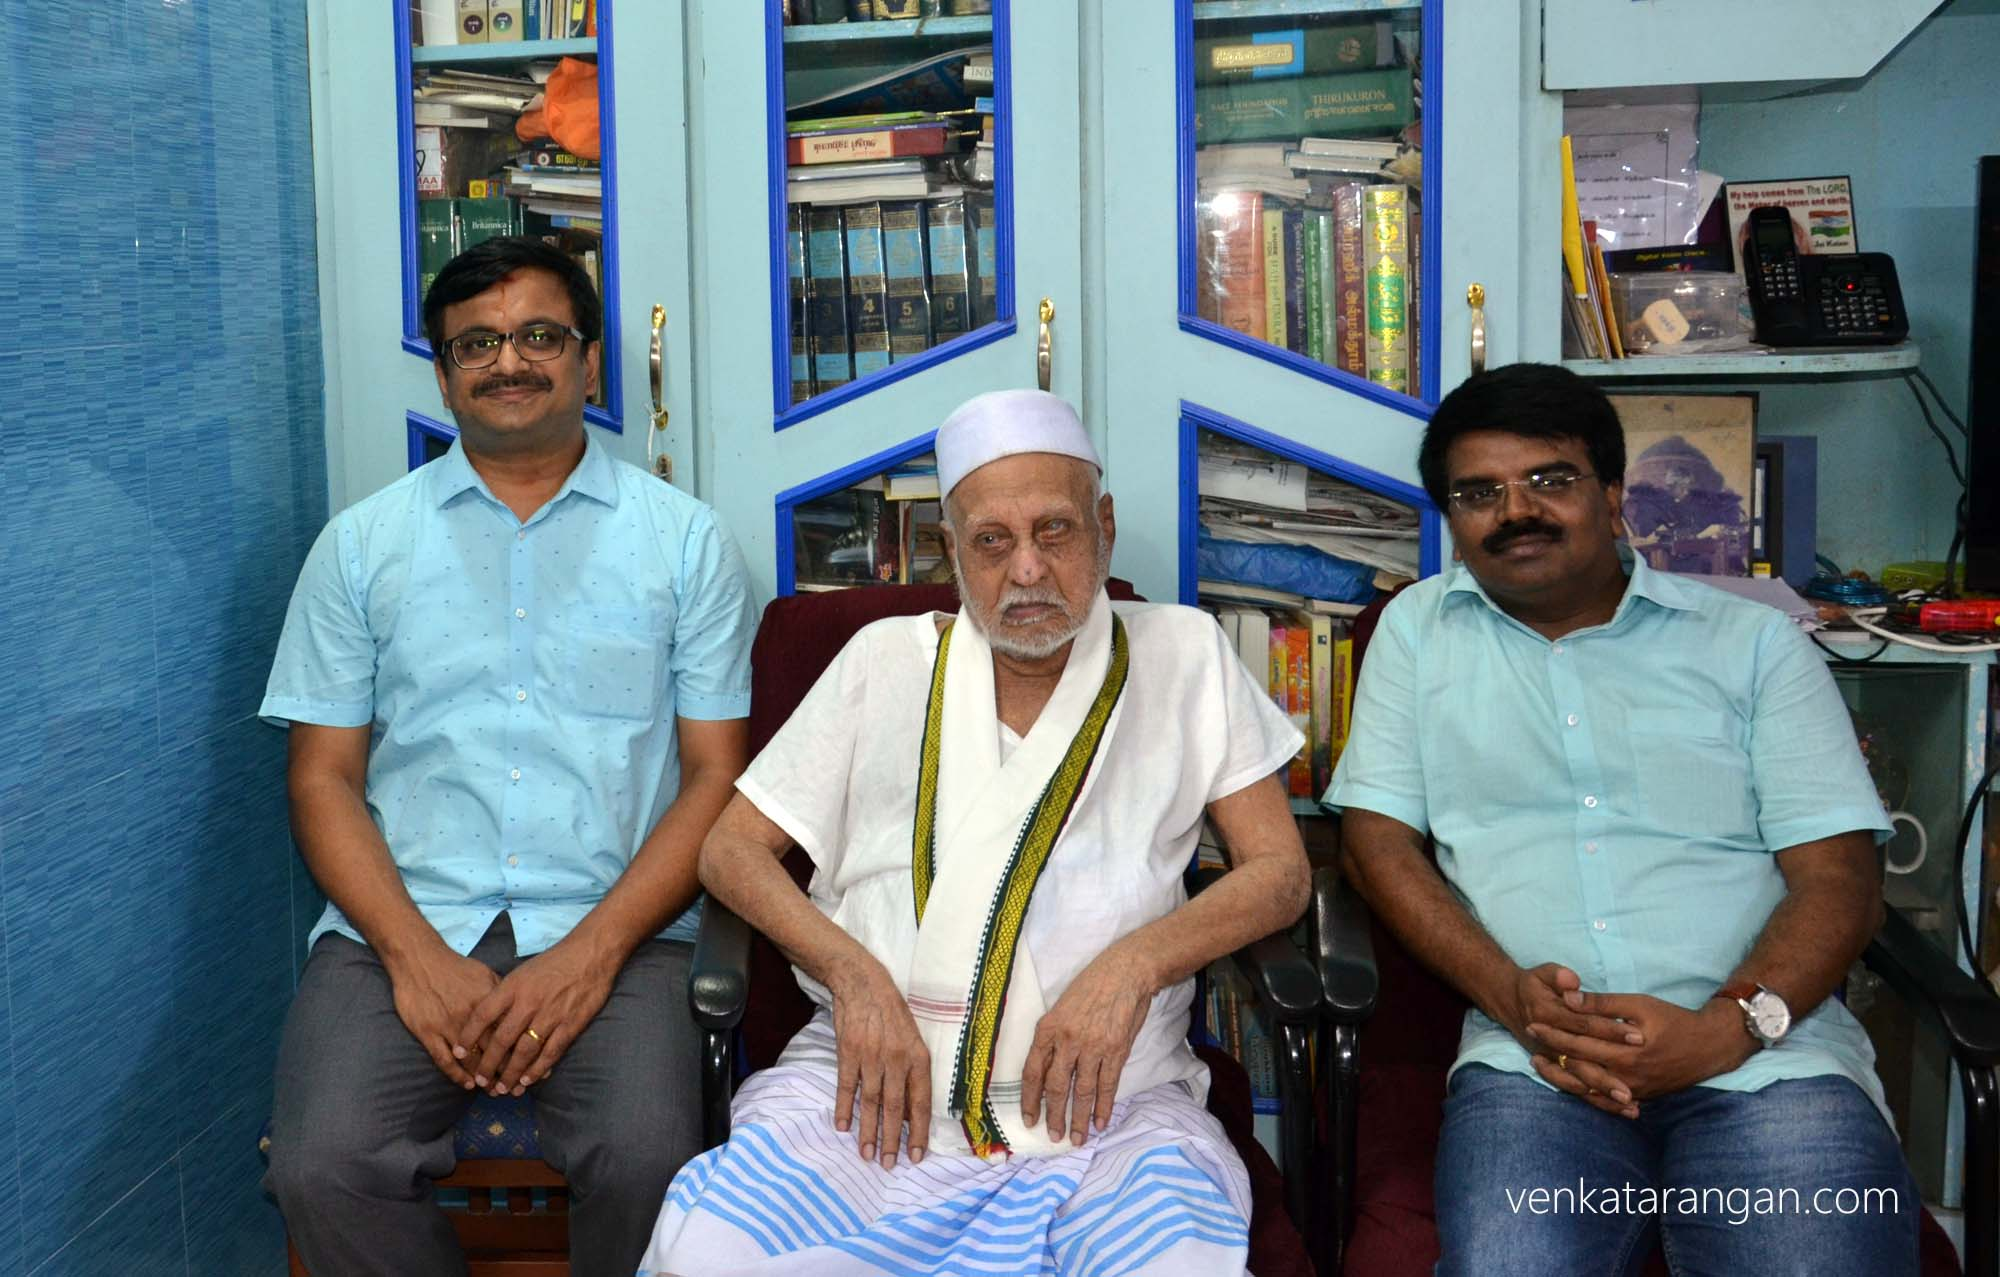 (in centre) Centenarian Mr A.P.J. Mohamed Muthu Meera Maraikayar, elder brother of former President A.P.J. Abdul Kalam